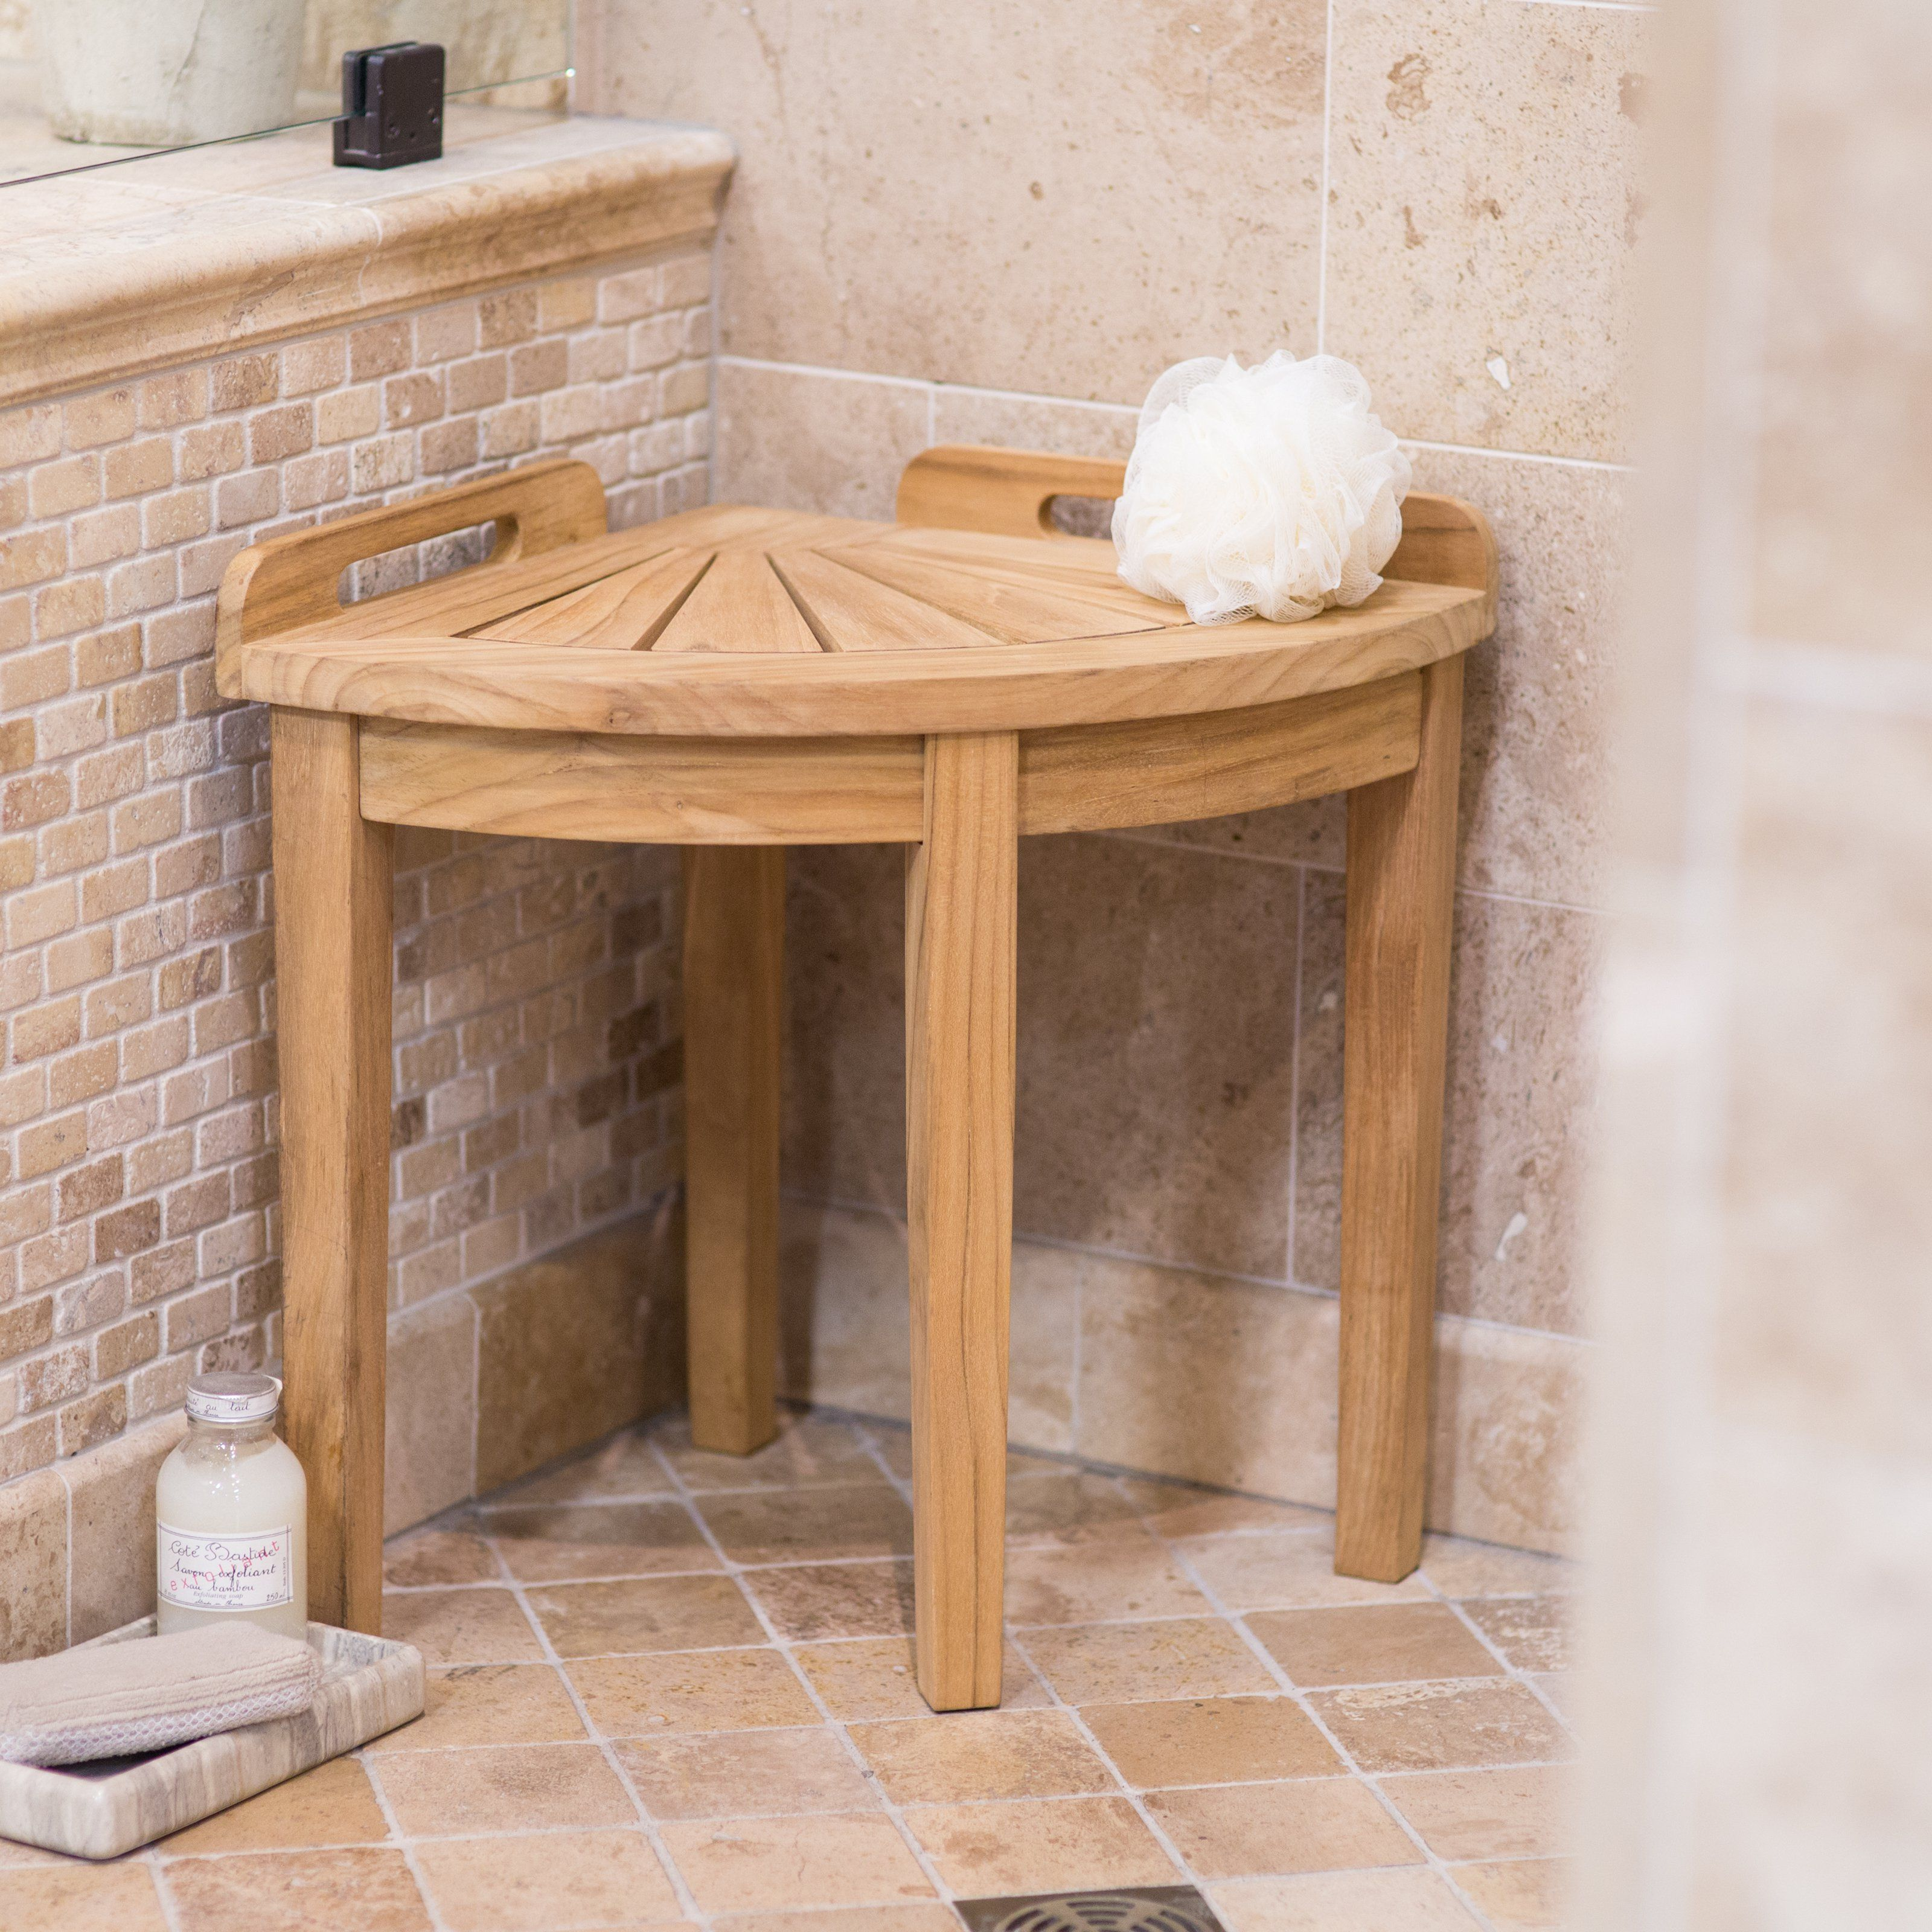 spa wood feel adds teak perfect stool in showering your finish to for like modern a bathroom experience corner seat with shower this walk shelf pin and